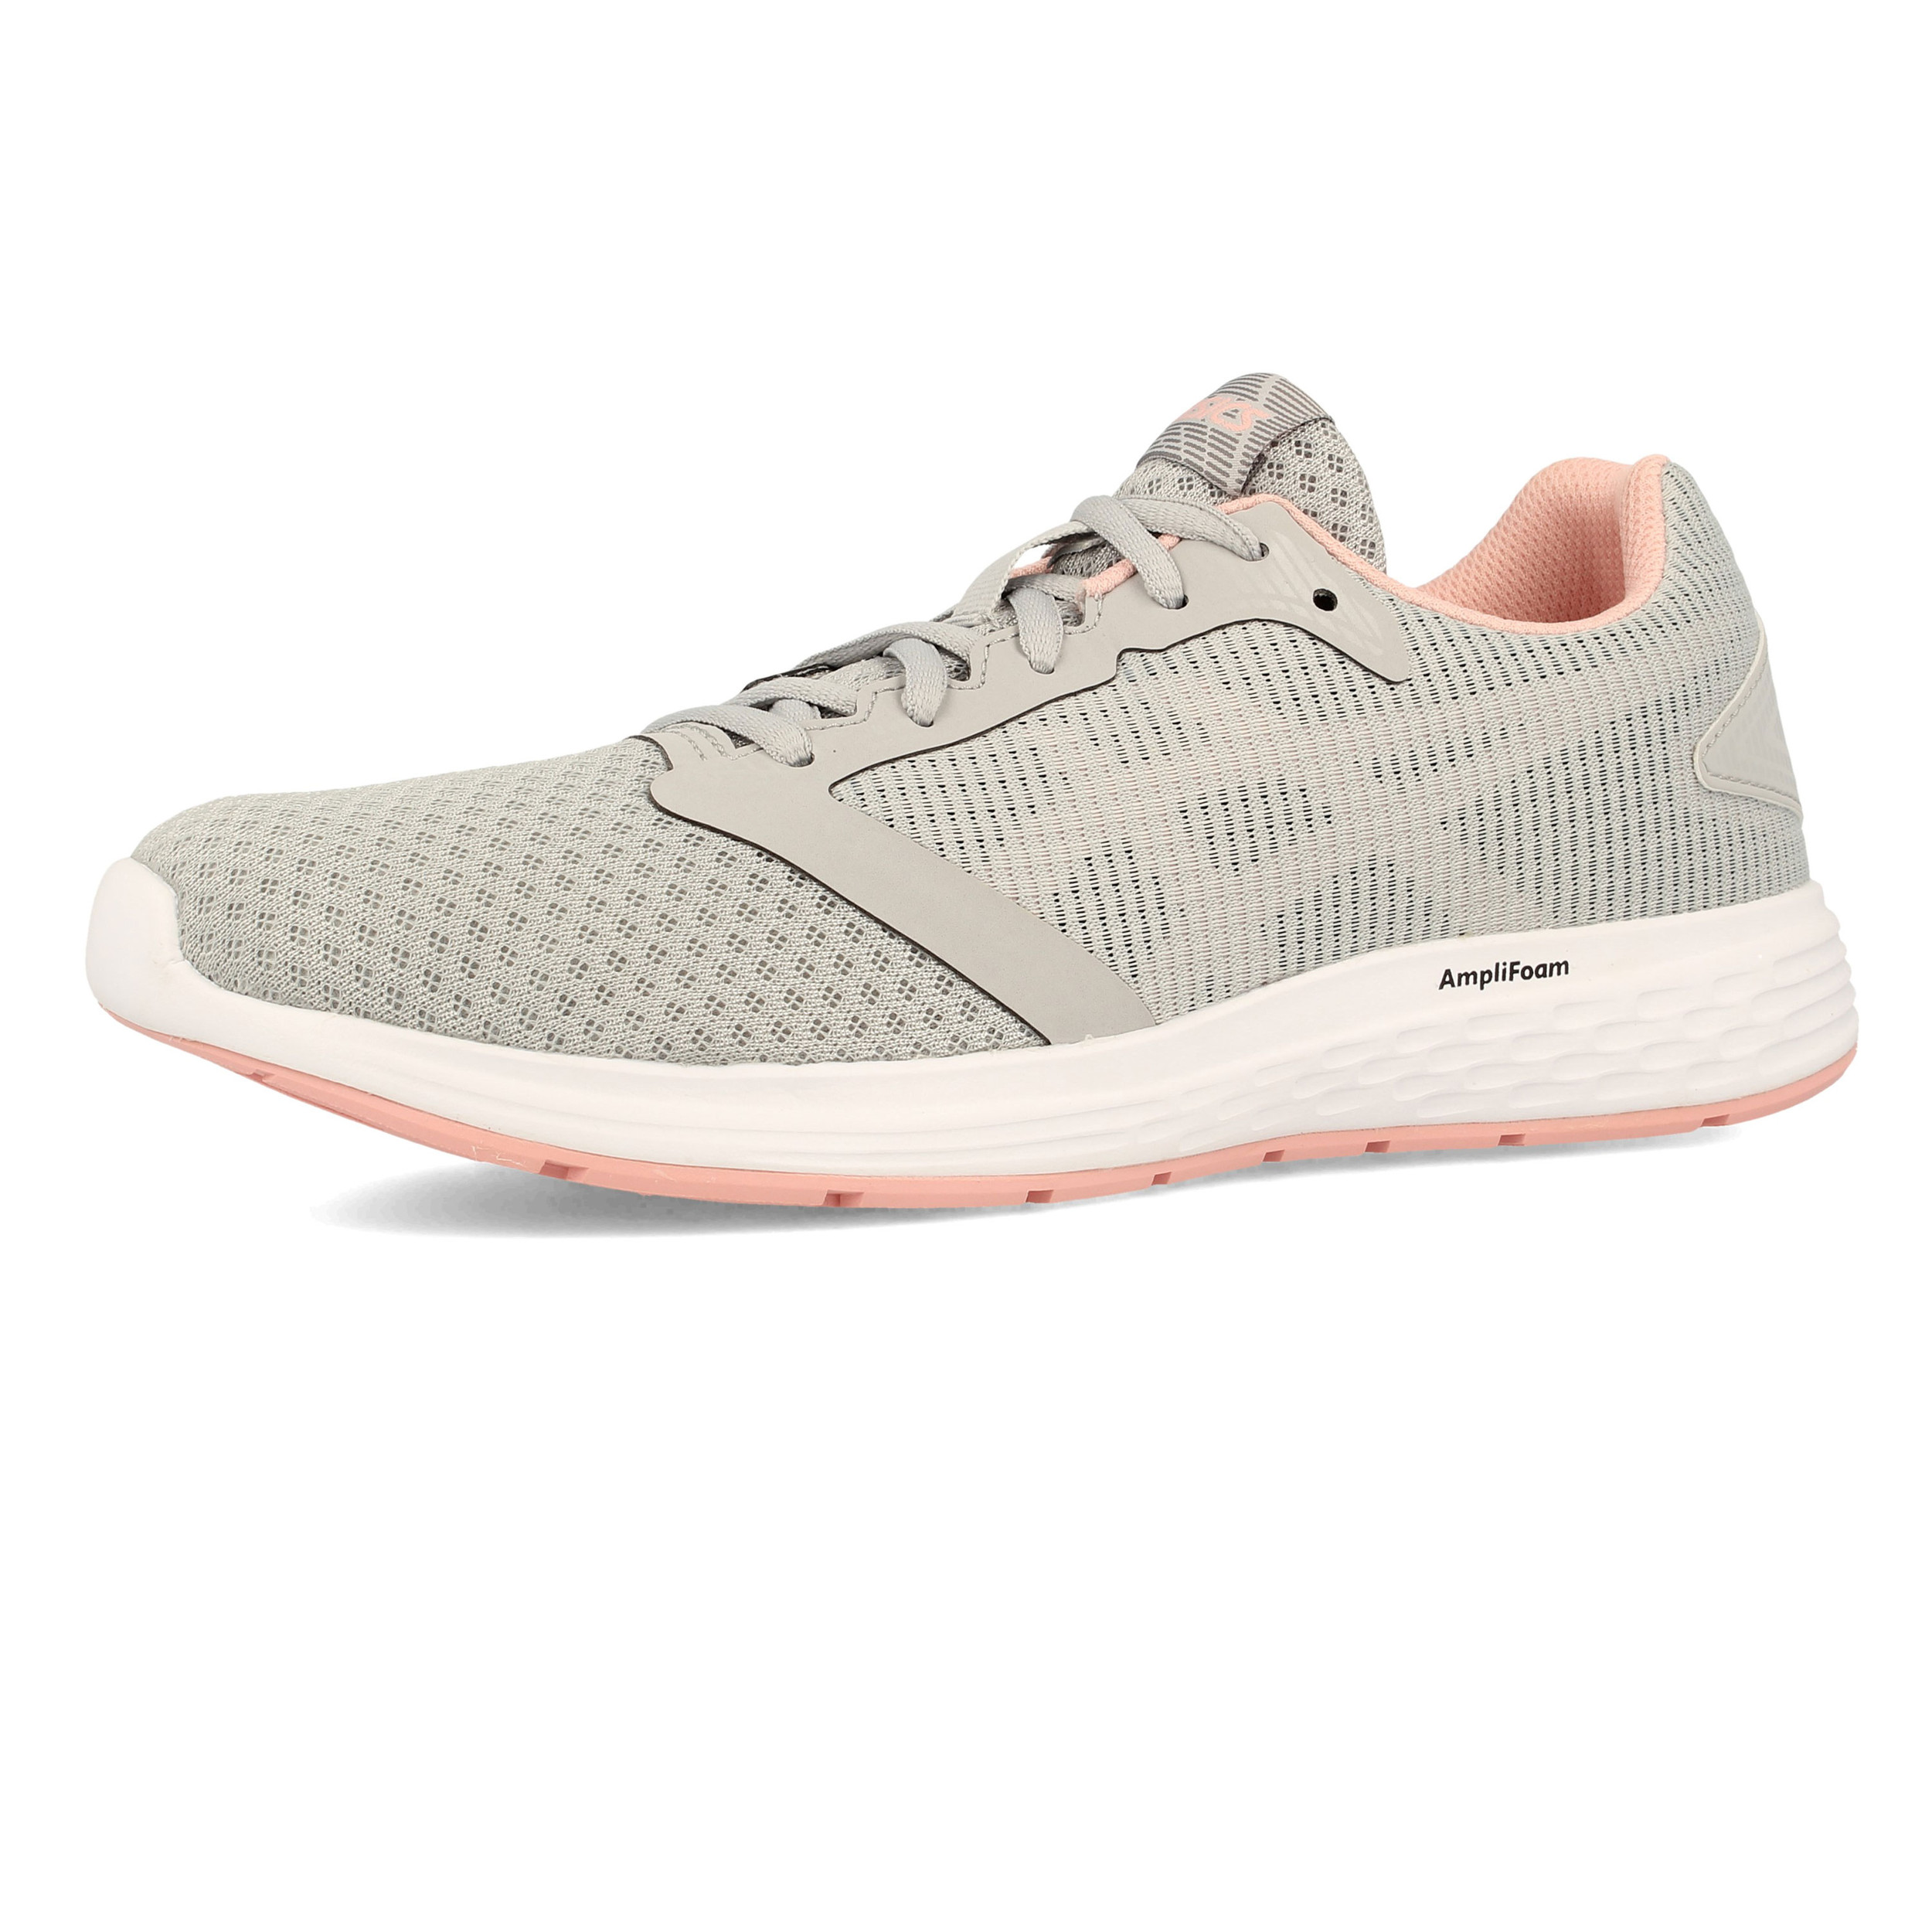 Details about Asics Womens Patriot 10 Running Shoes Trainers Sneakers Grey  Sports Breathable 27ef4d6b4e93d